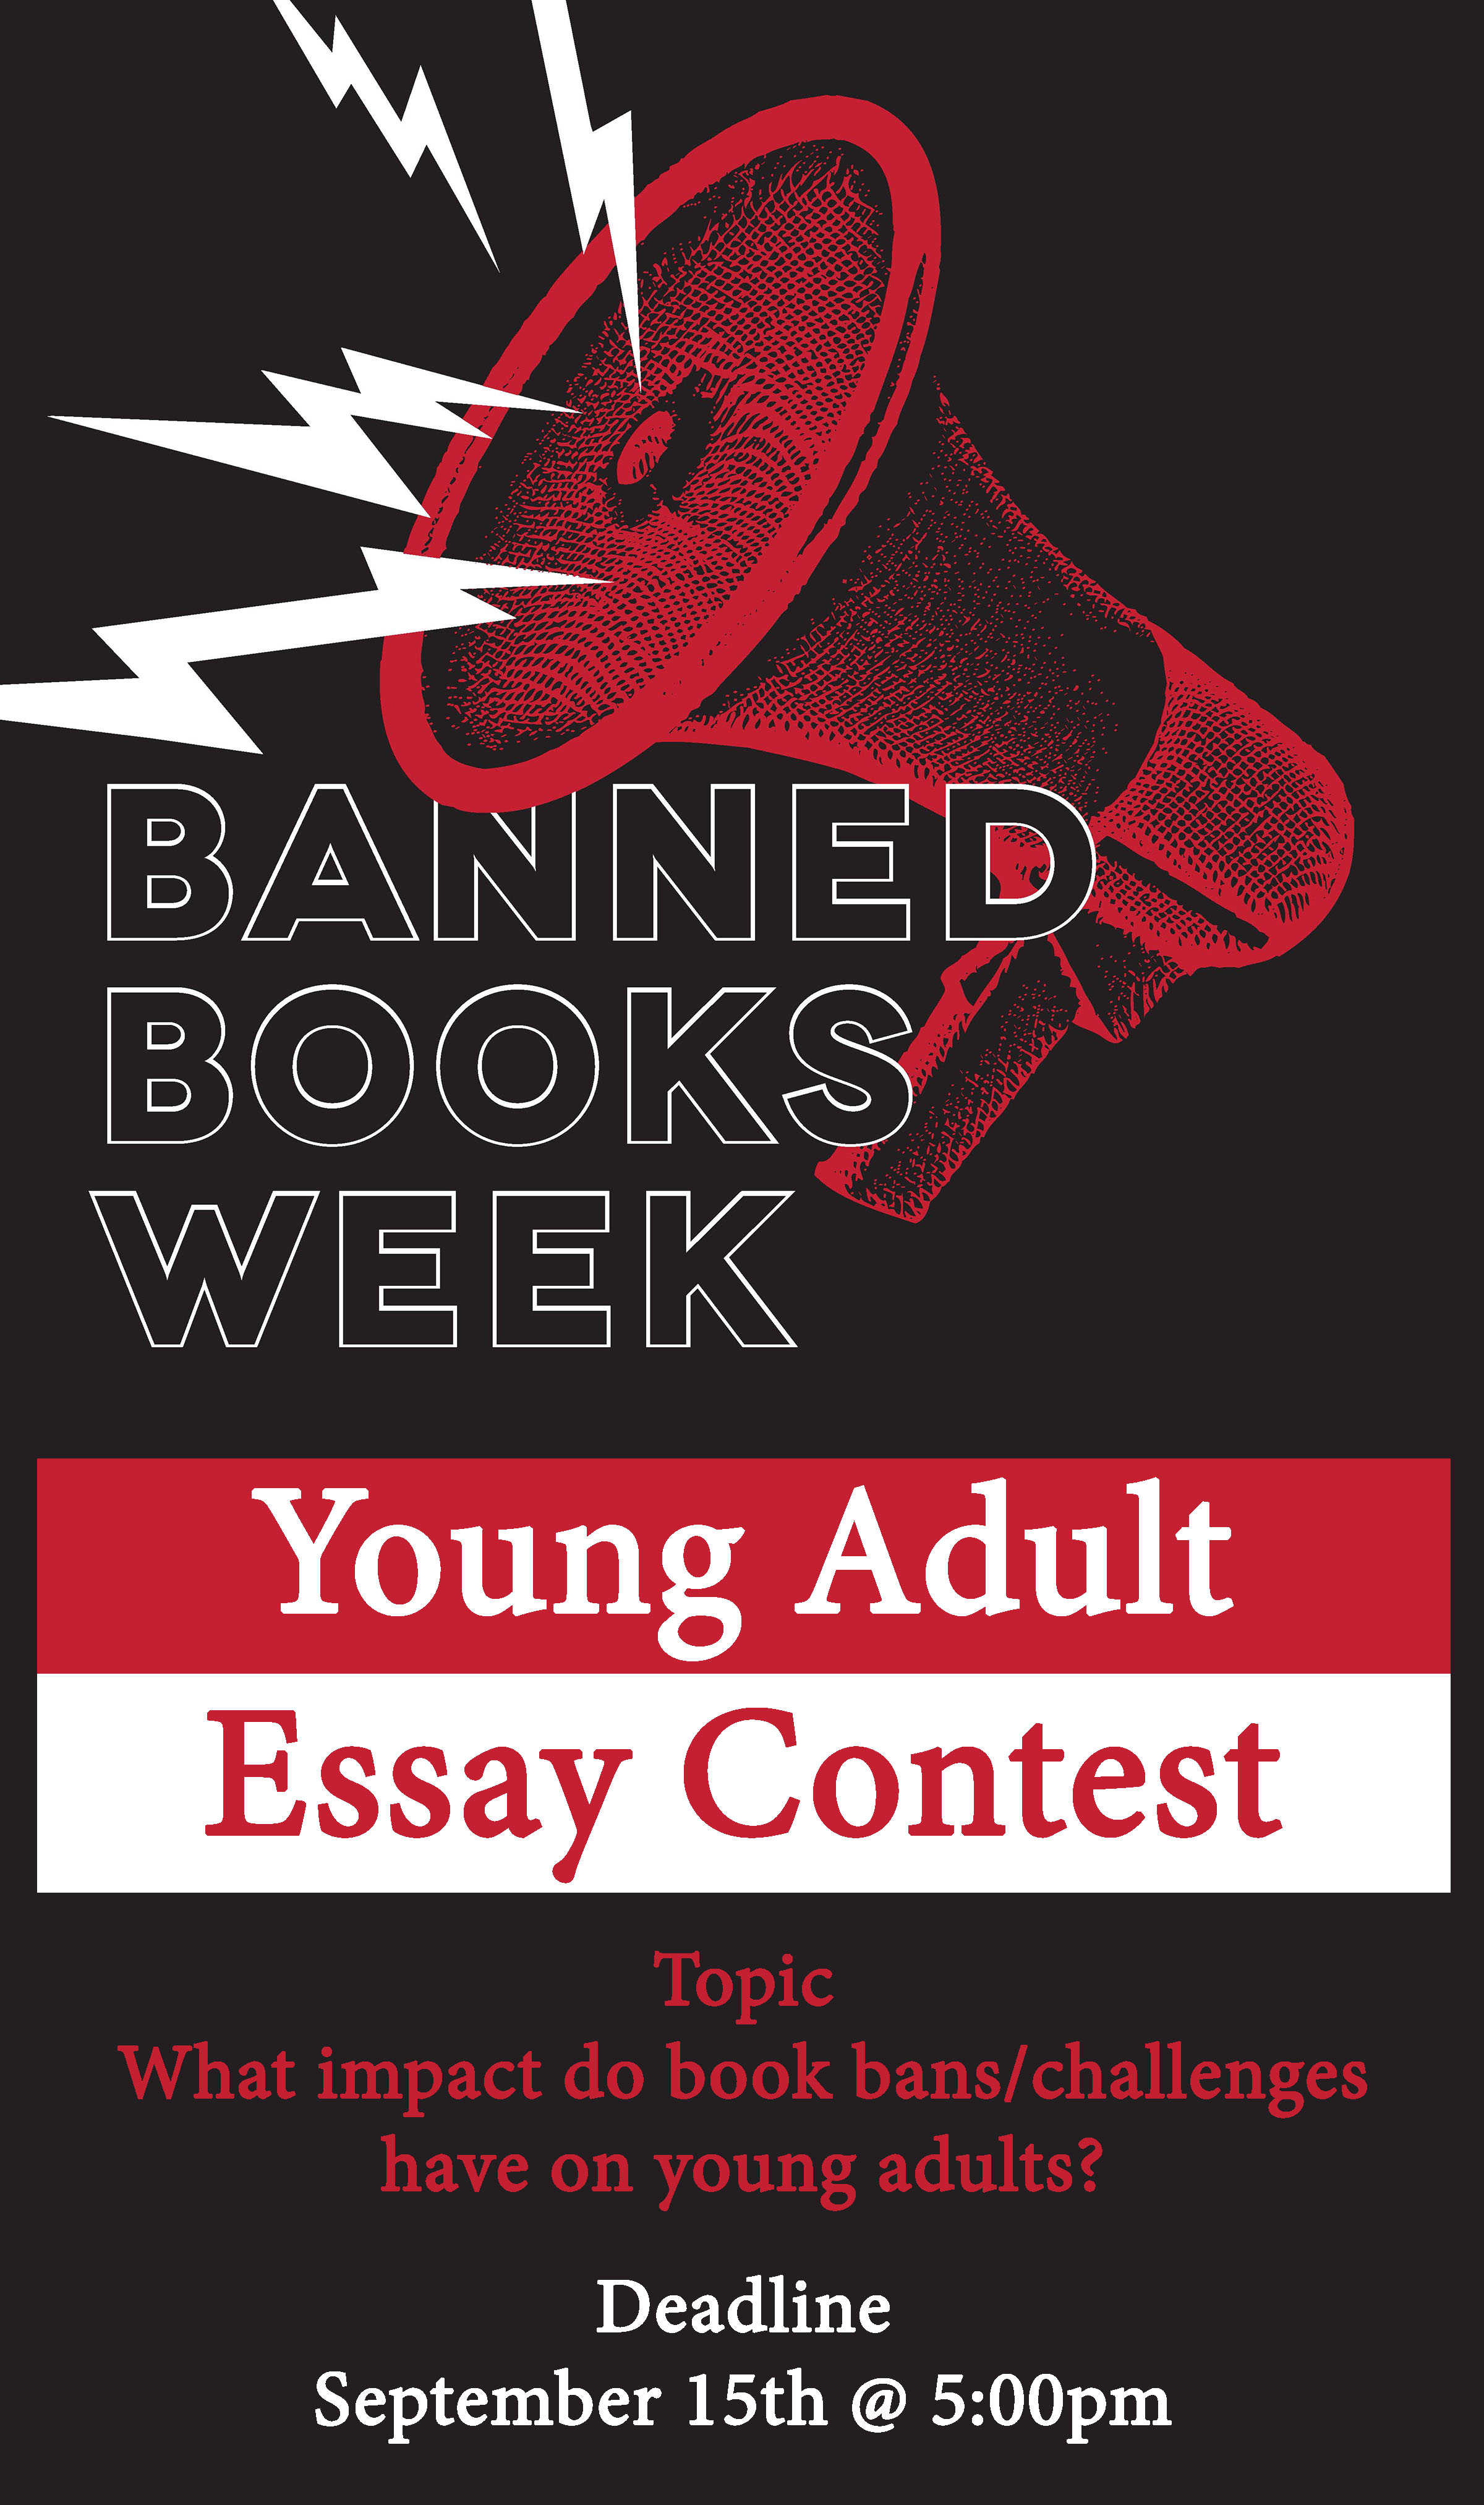 Inaugural Banned Book Essay Contest